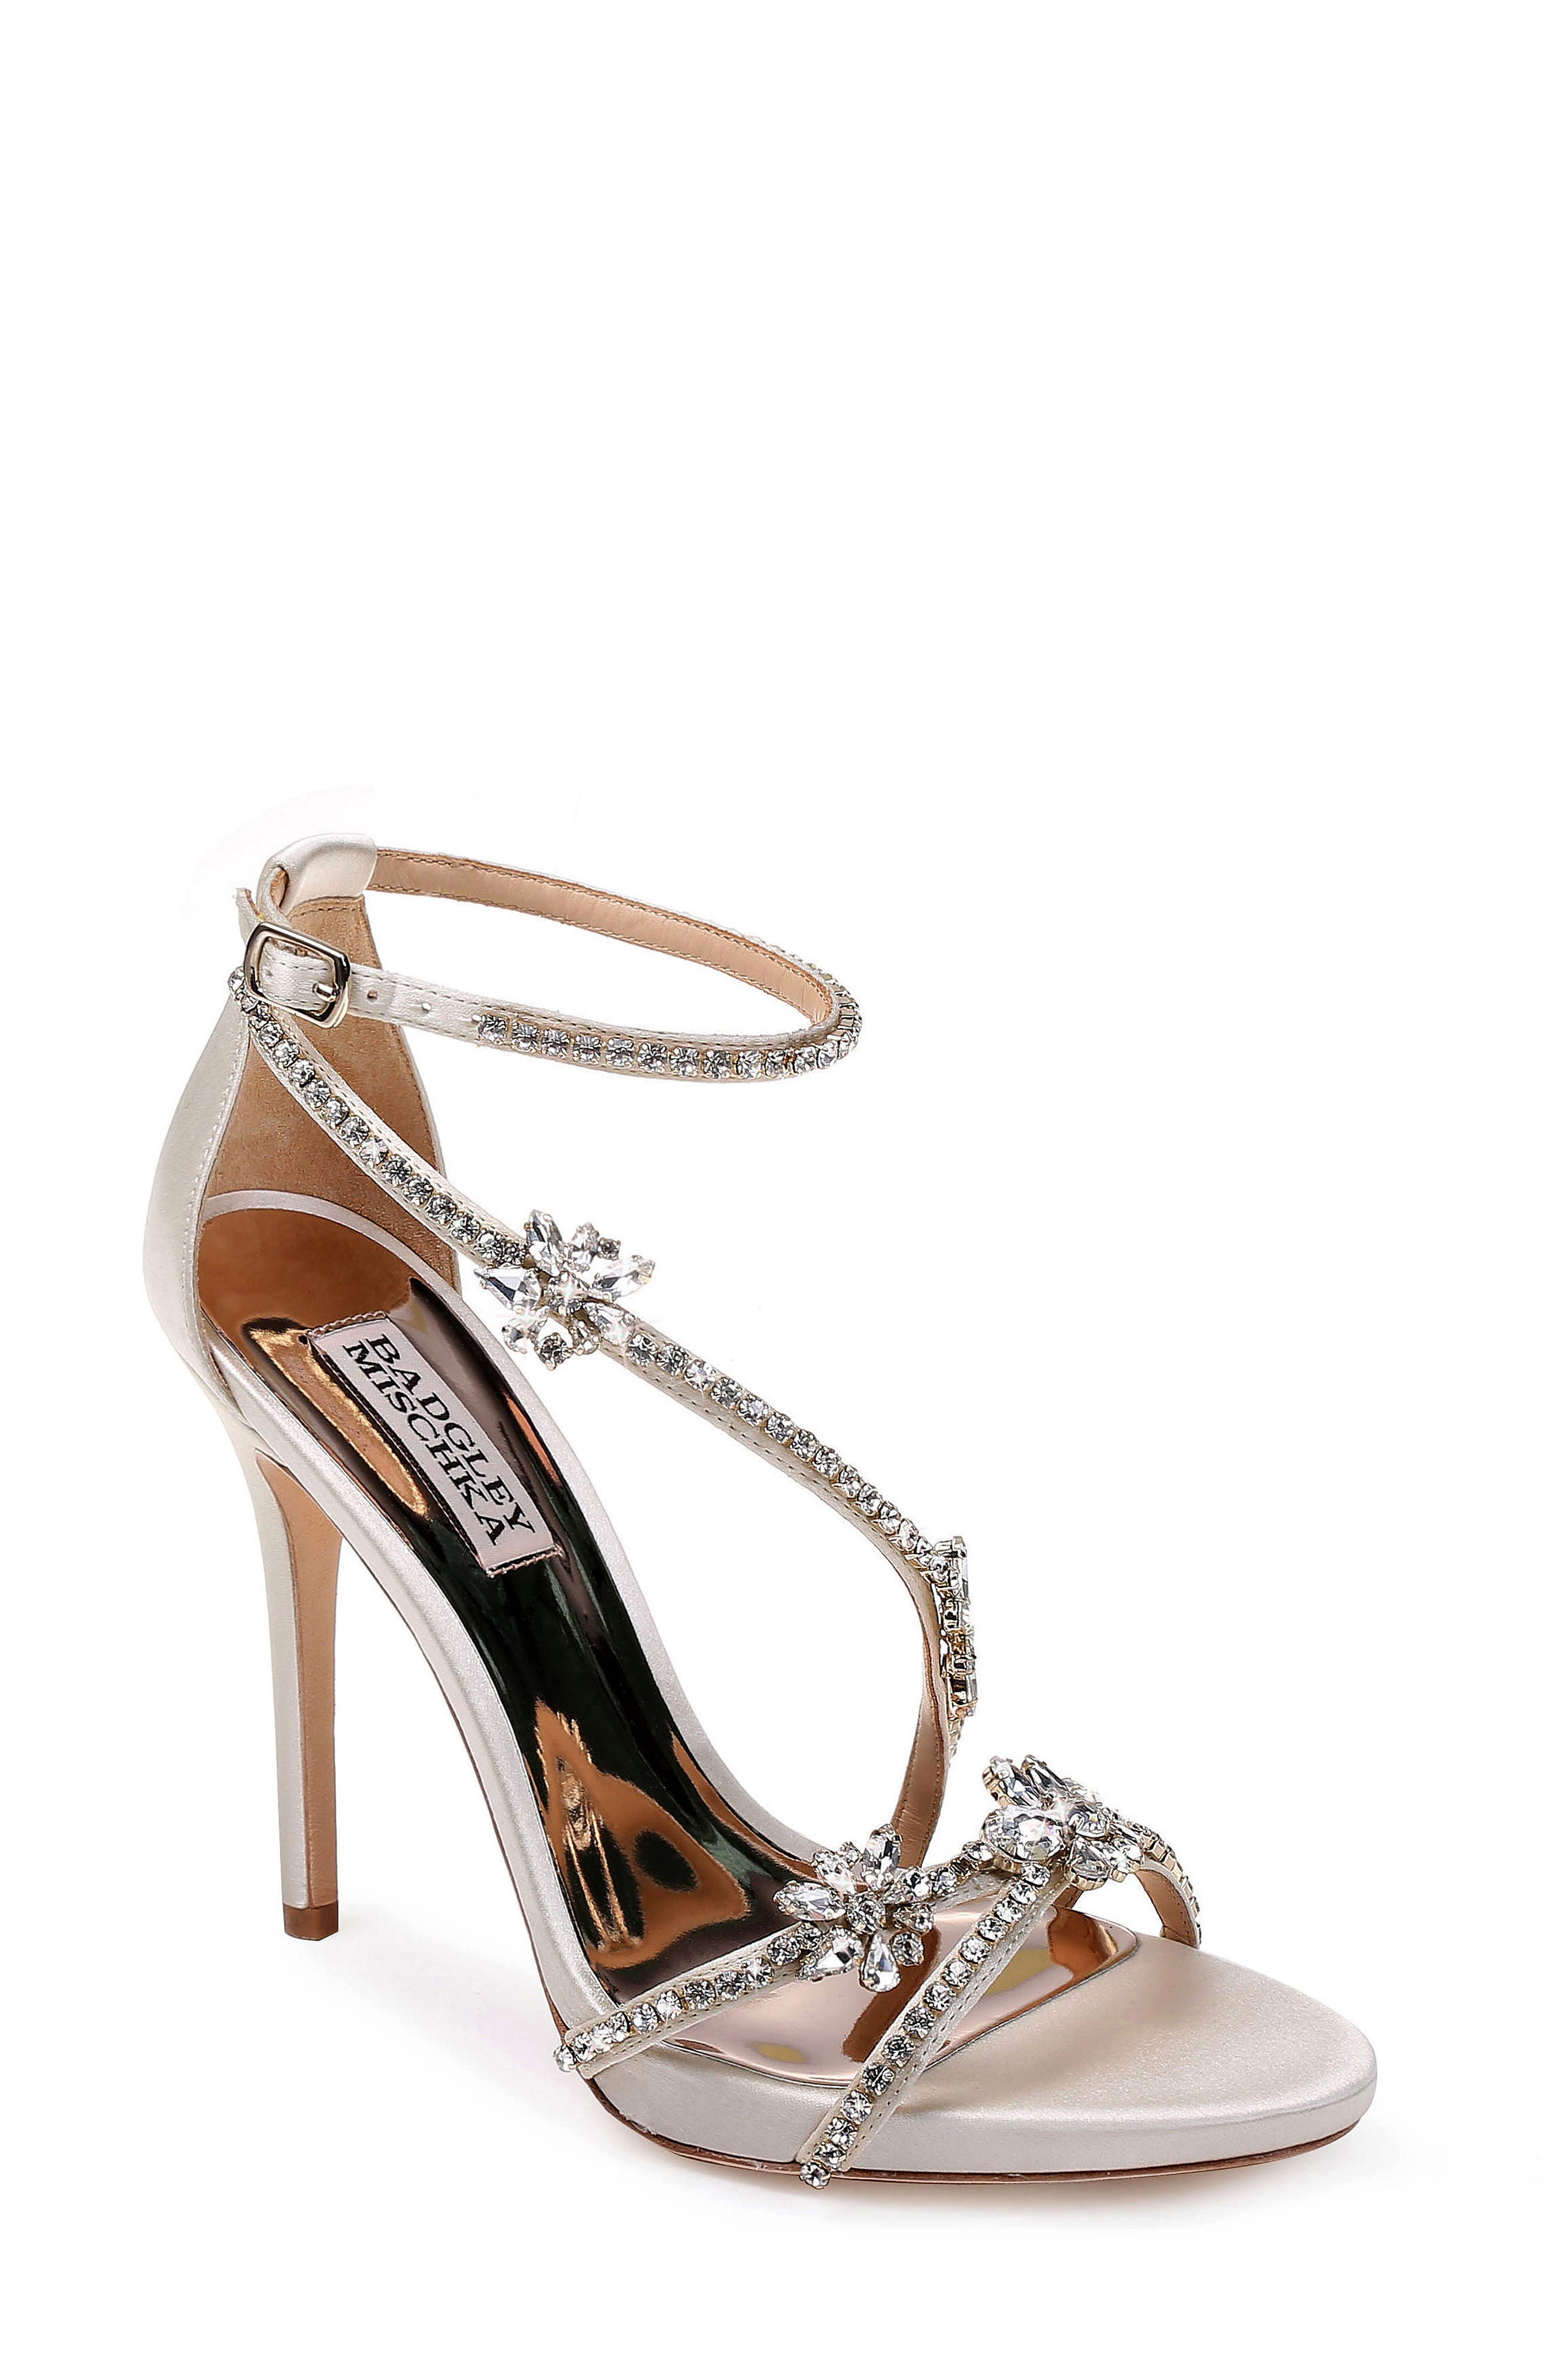 Hodge Strappy Sandal,                         Main,                         color, IVORY SATIN